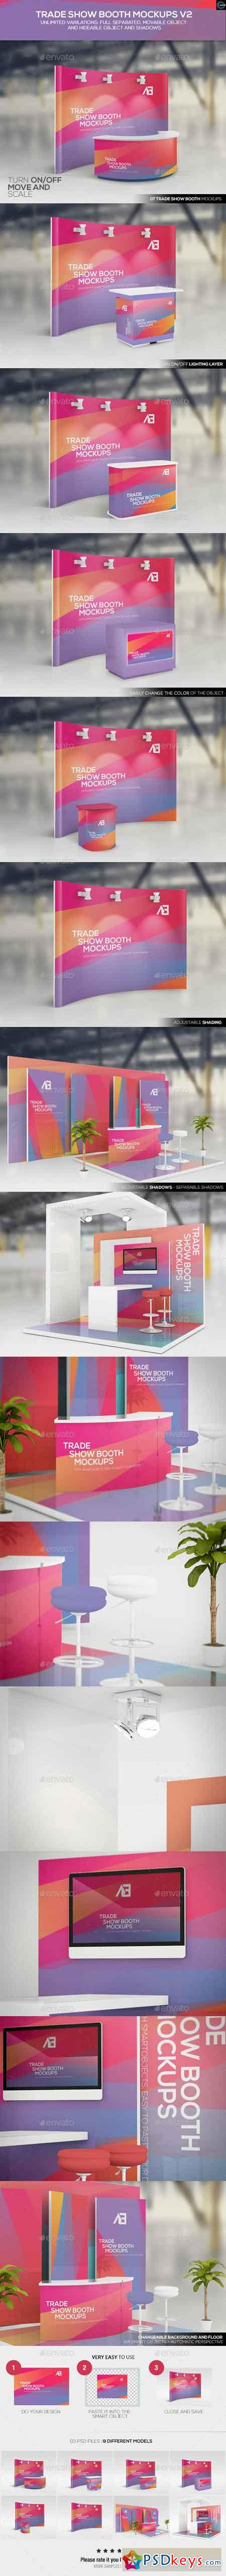 Trade Show Booth Mockups V2 11170591 » Free Download Photoshop